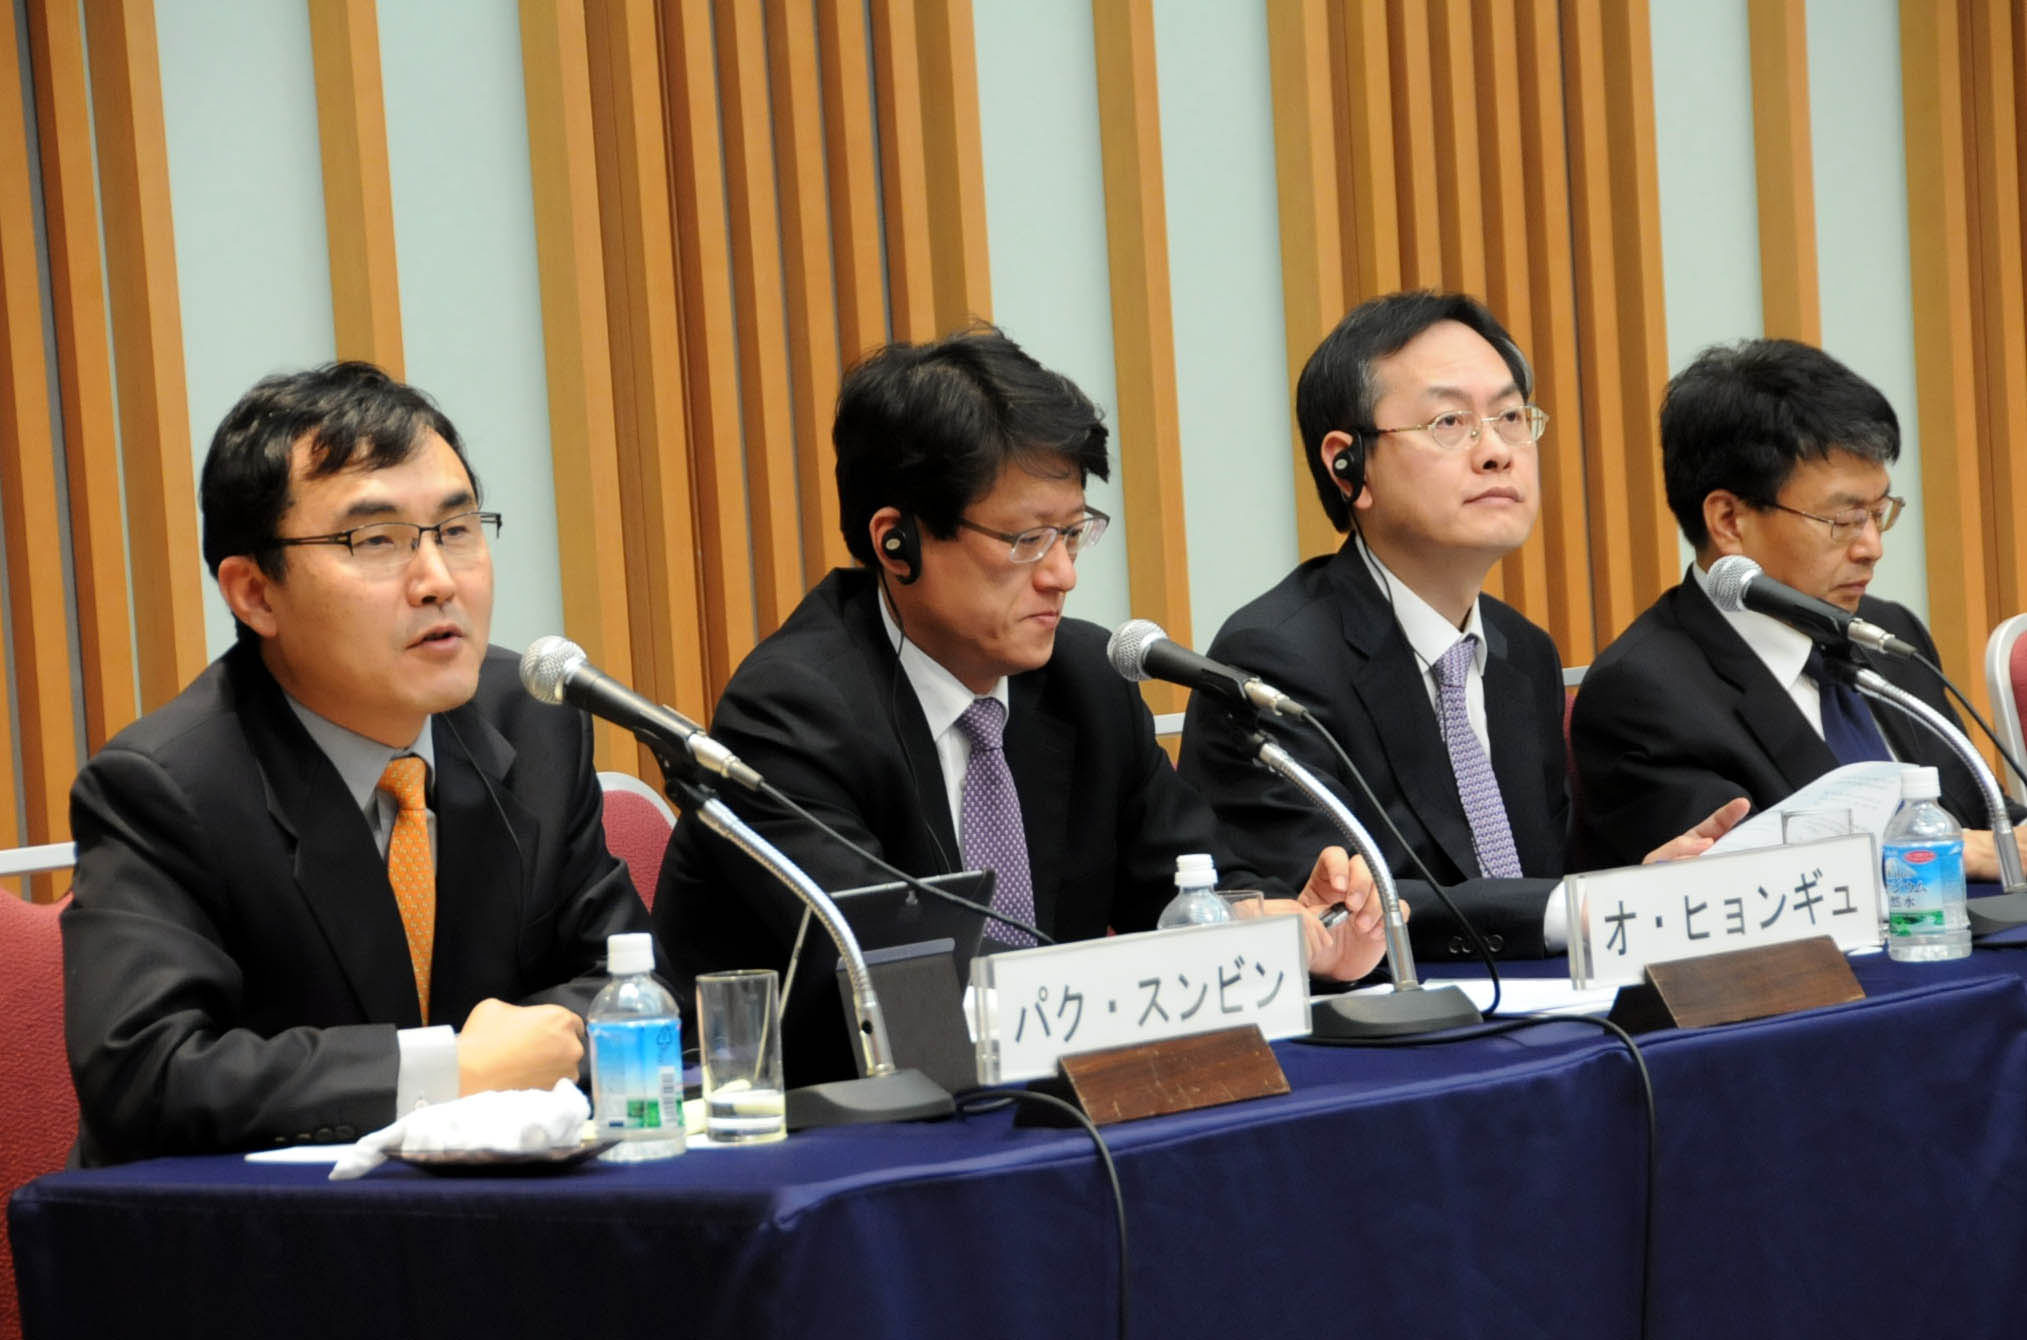 Park Soon Bin of The Hankyoreh speaks about free trade talks in East Asia as Oh Hyung Kyoo of The Korea Economic Daily listens. | SATOKO KAWASAKI